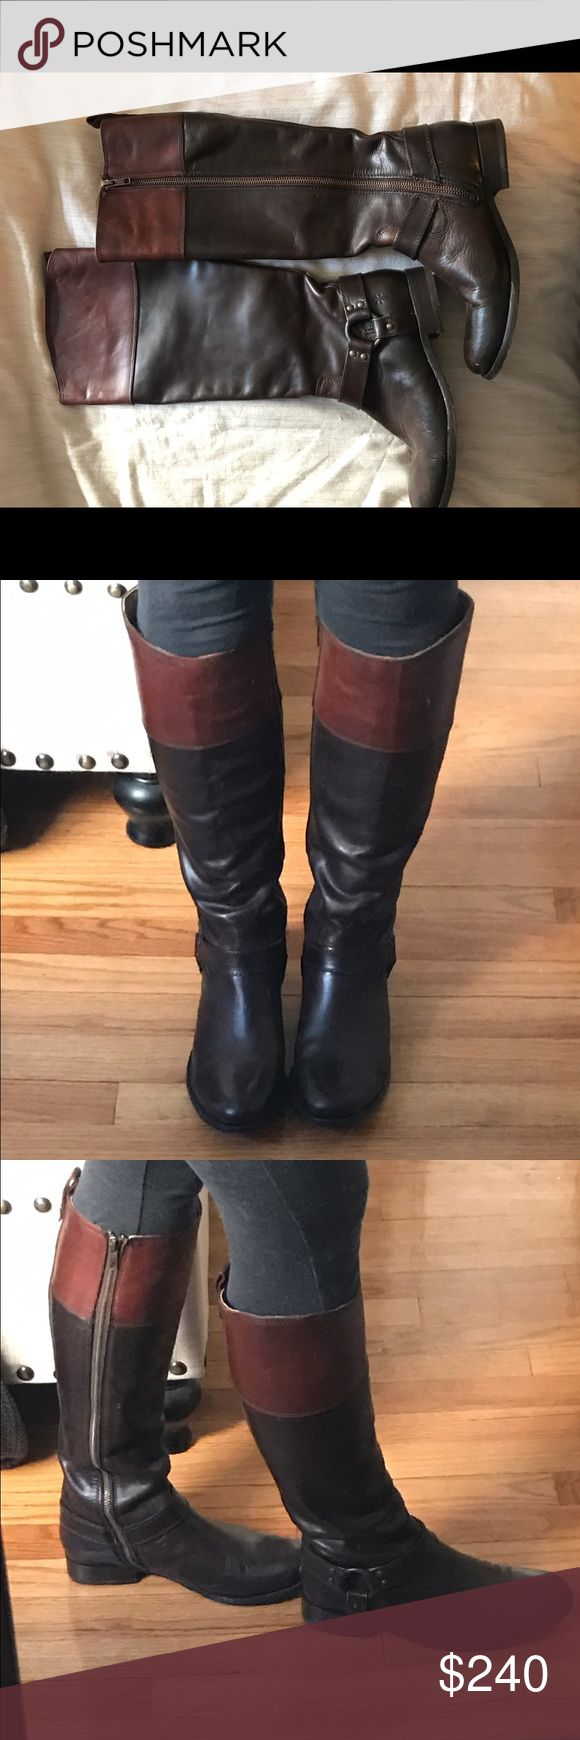 Frye Two Tone Riding Boots Size 8 two tone brown leather Frye riding boots. Worn twice - not for people with a wider calf. Frye Shoes Winter & Rain Boots